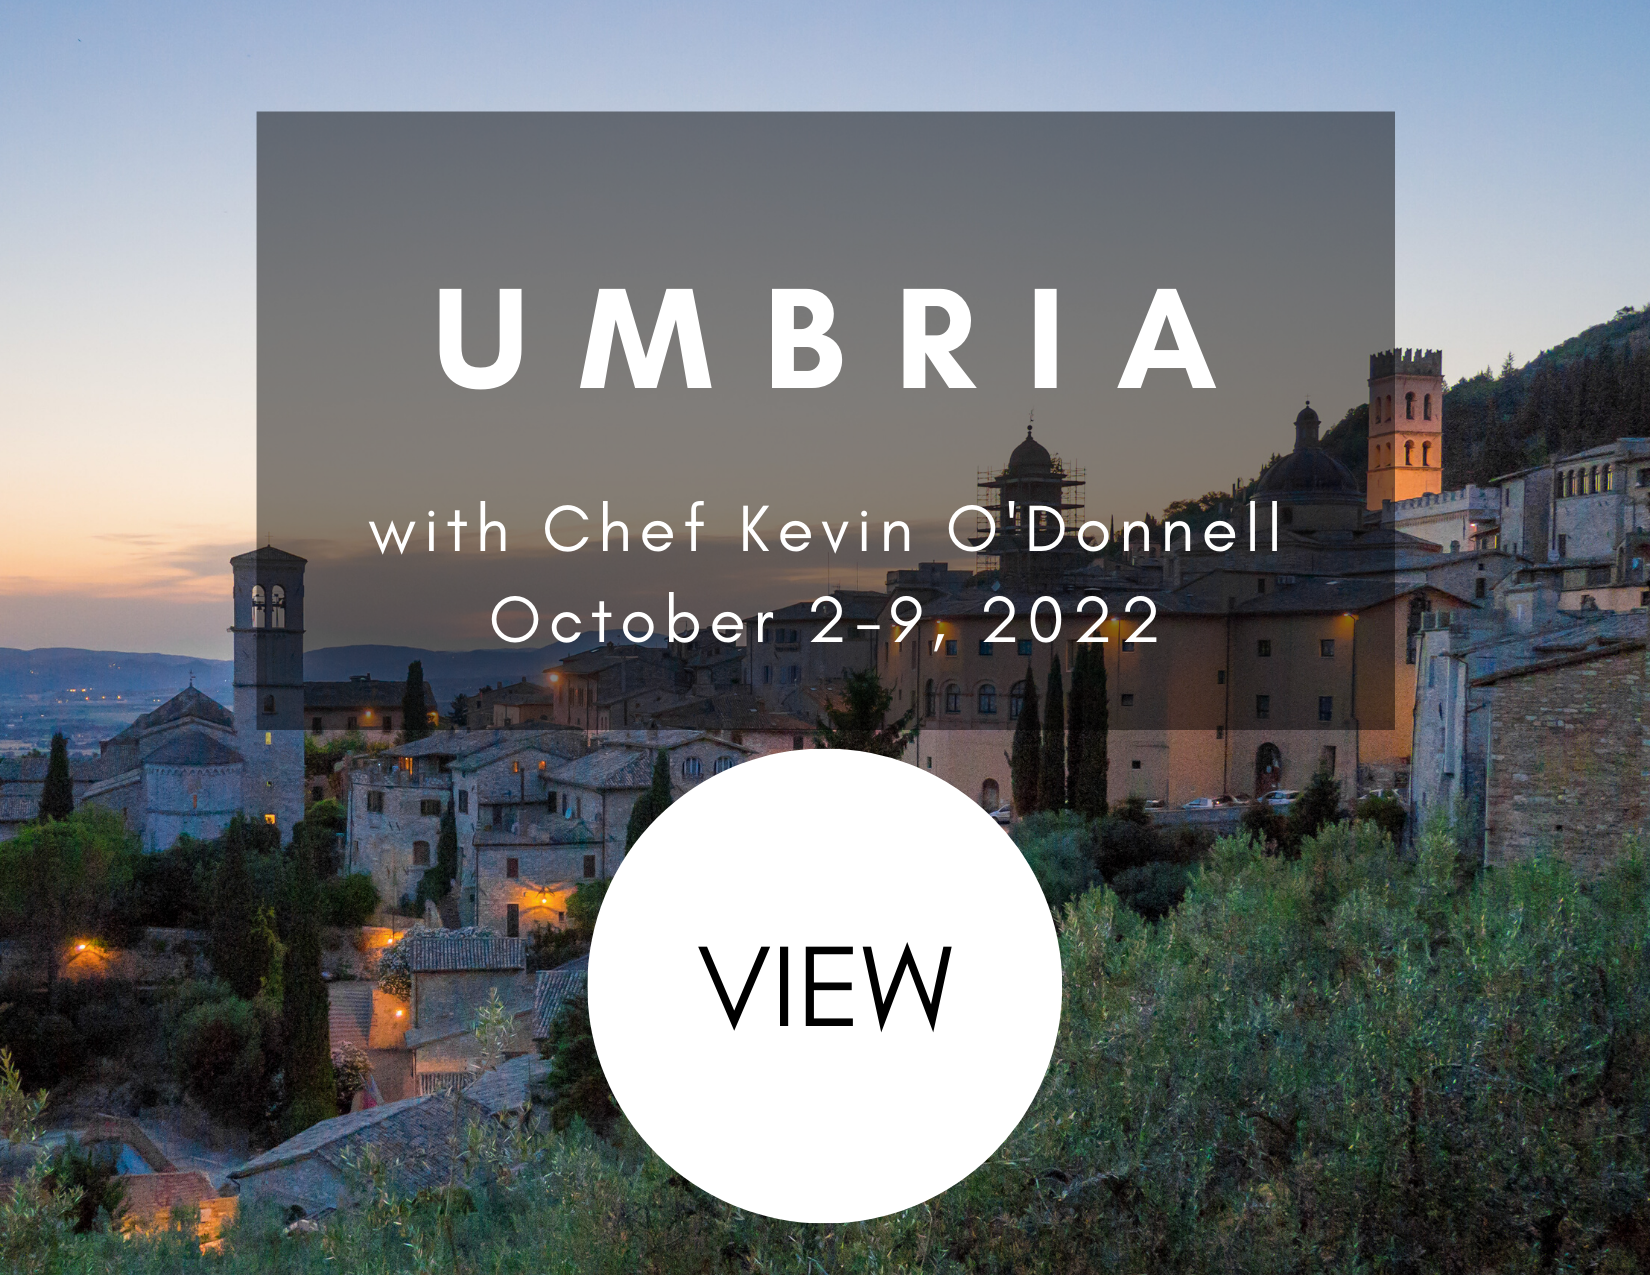 Umbria with Chef Kevin O'Donnell Oct 2-9 2022